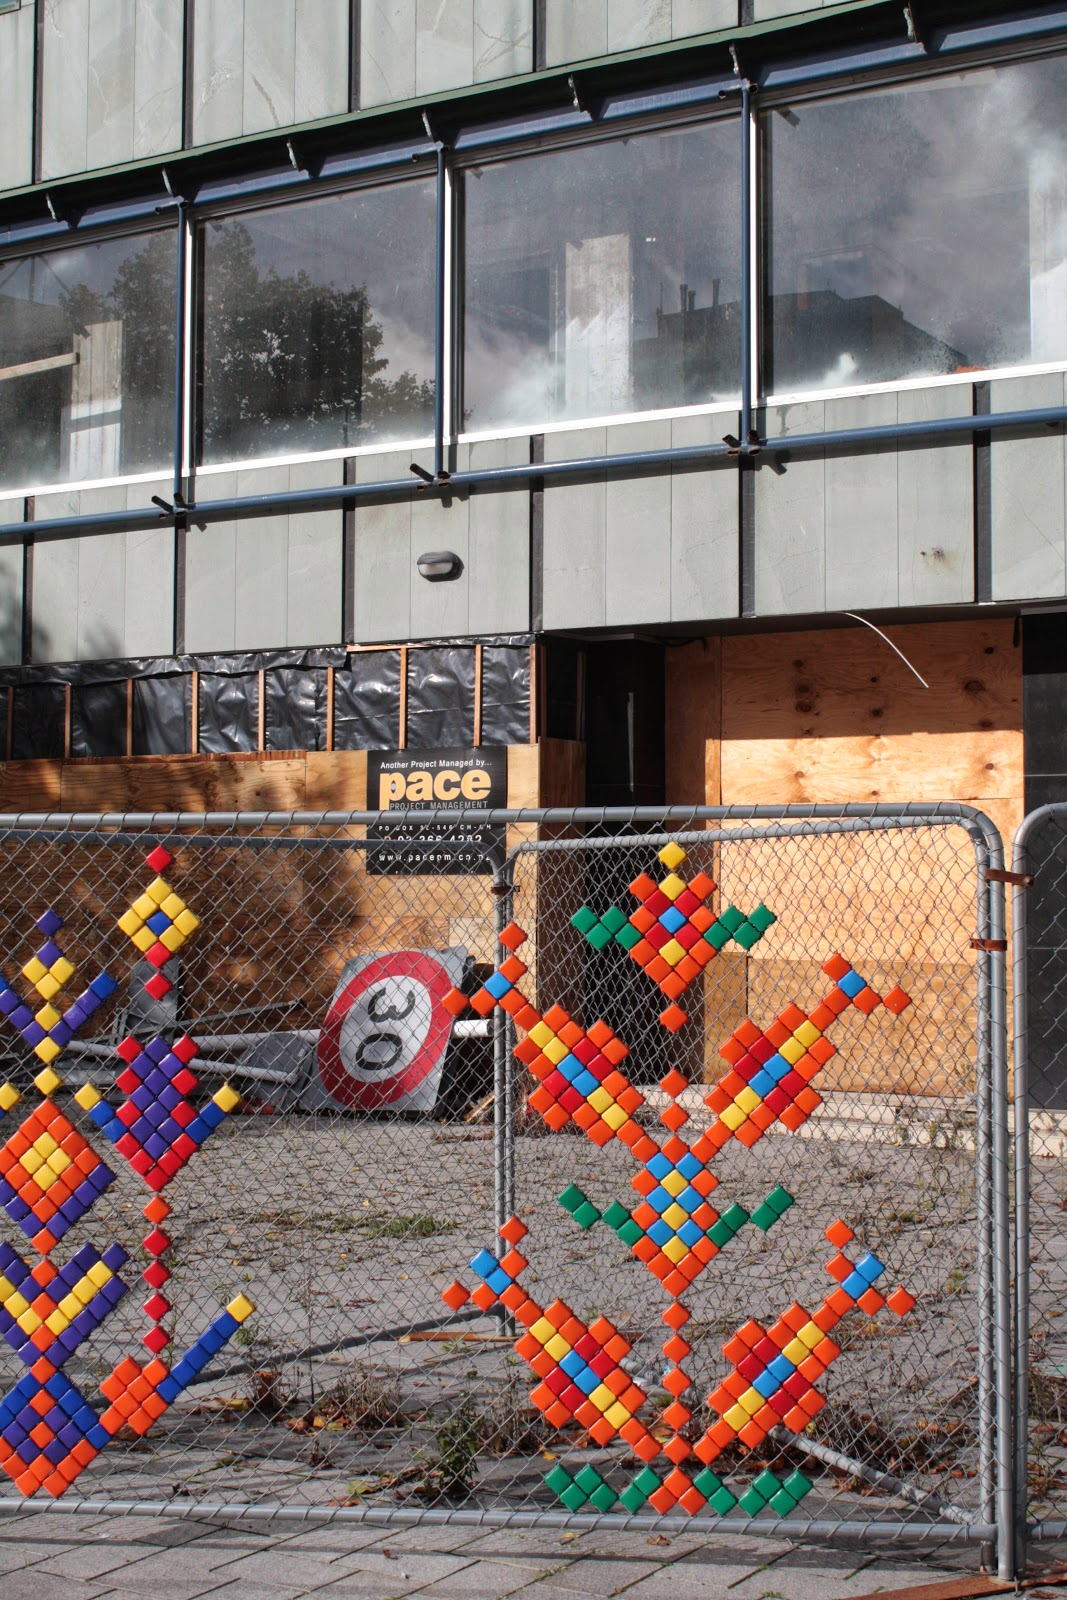 Plastic thingies stuck into hurricane fencing in the shape of flowers in front of a boarded up building.